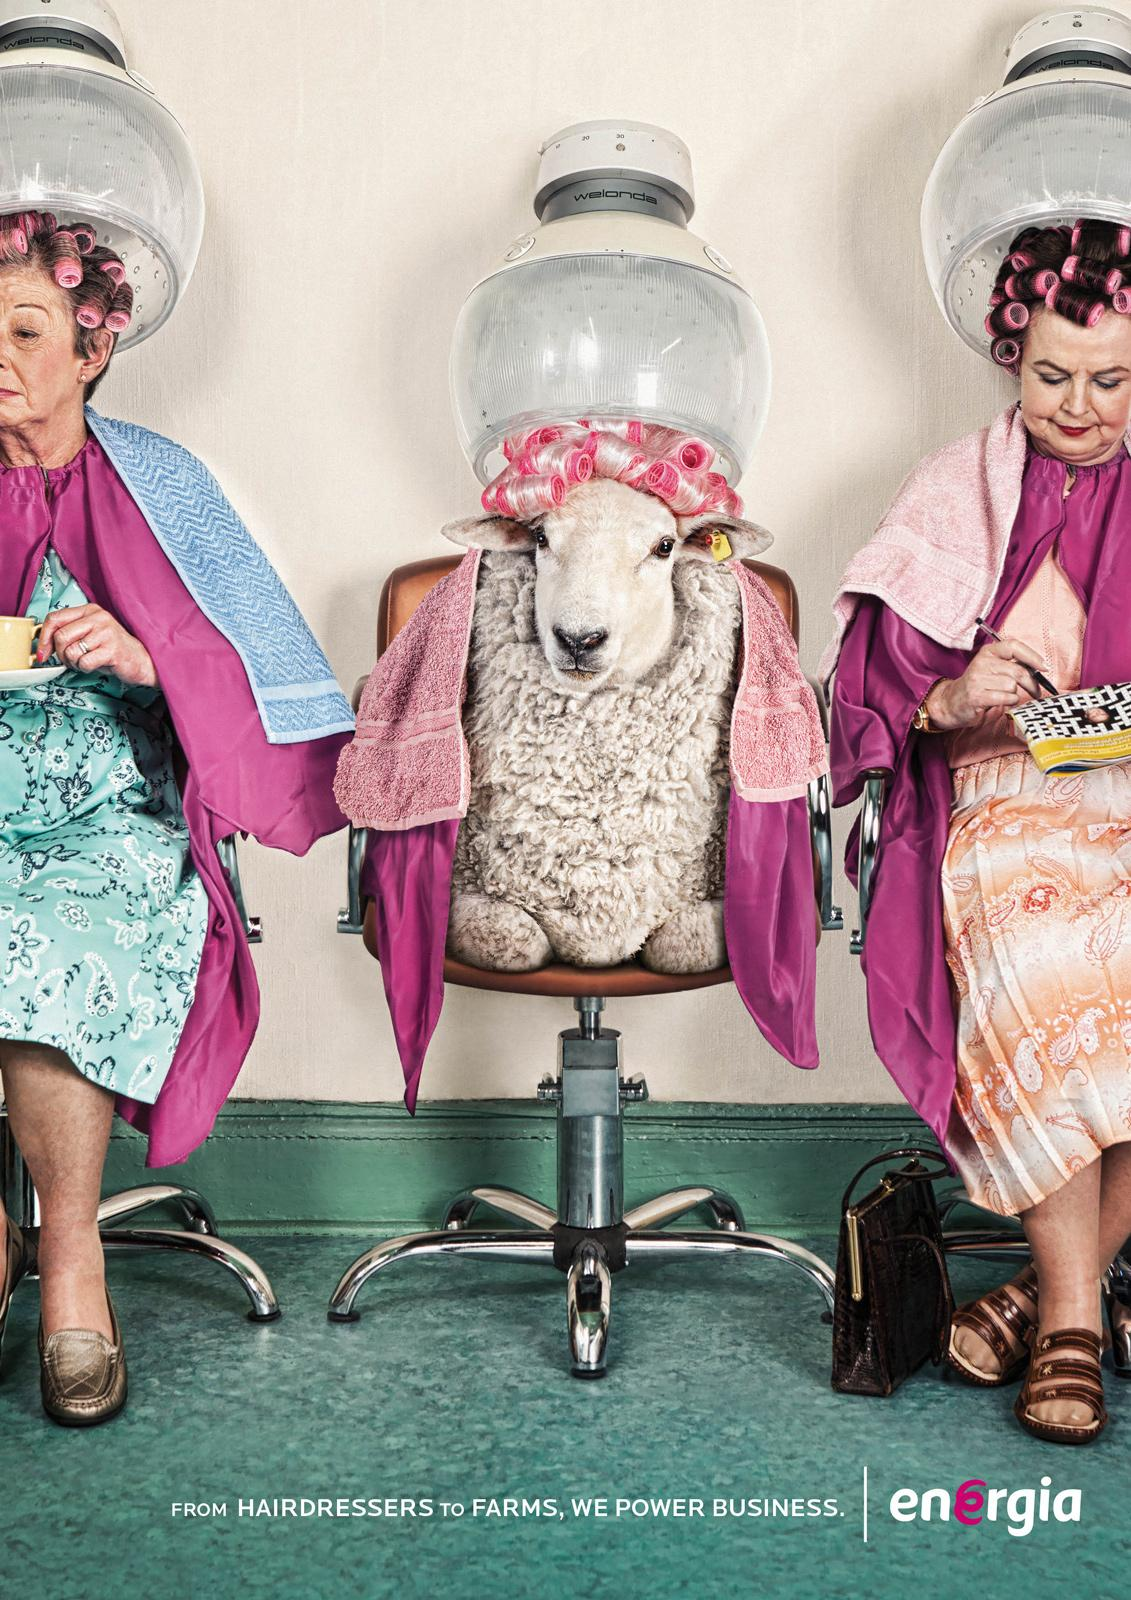 Energia Print Ad -  Hairdressers to farms